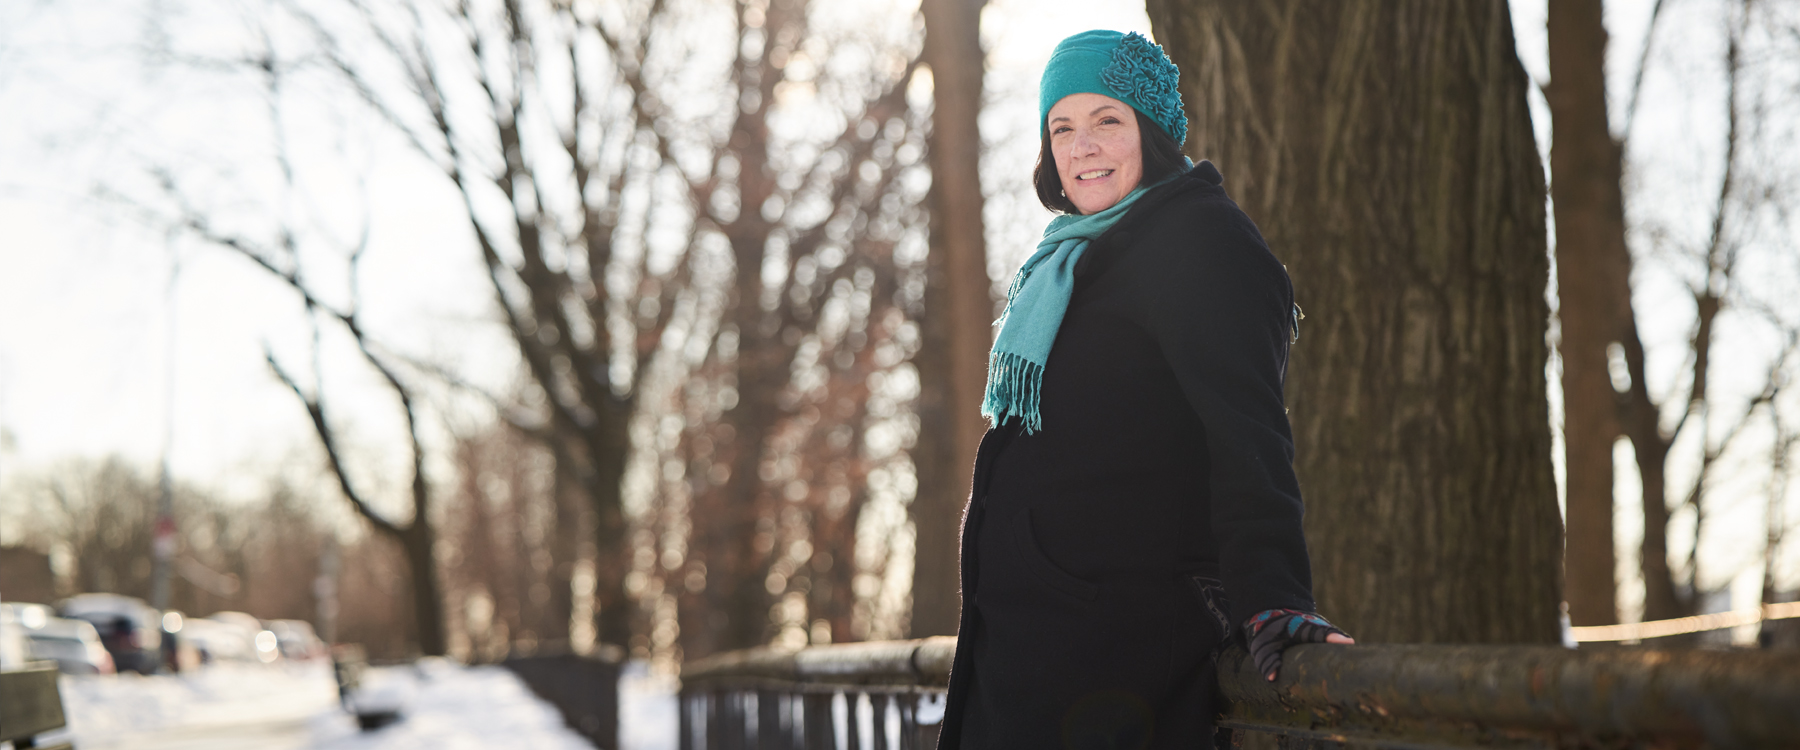 Mary Darby enjoys a stroll in the park.